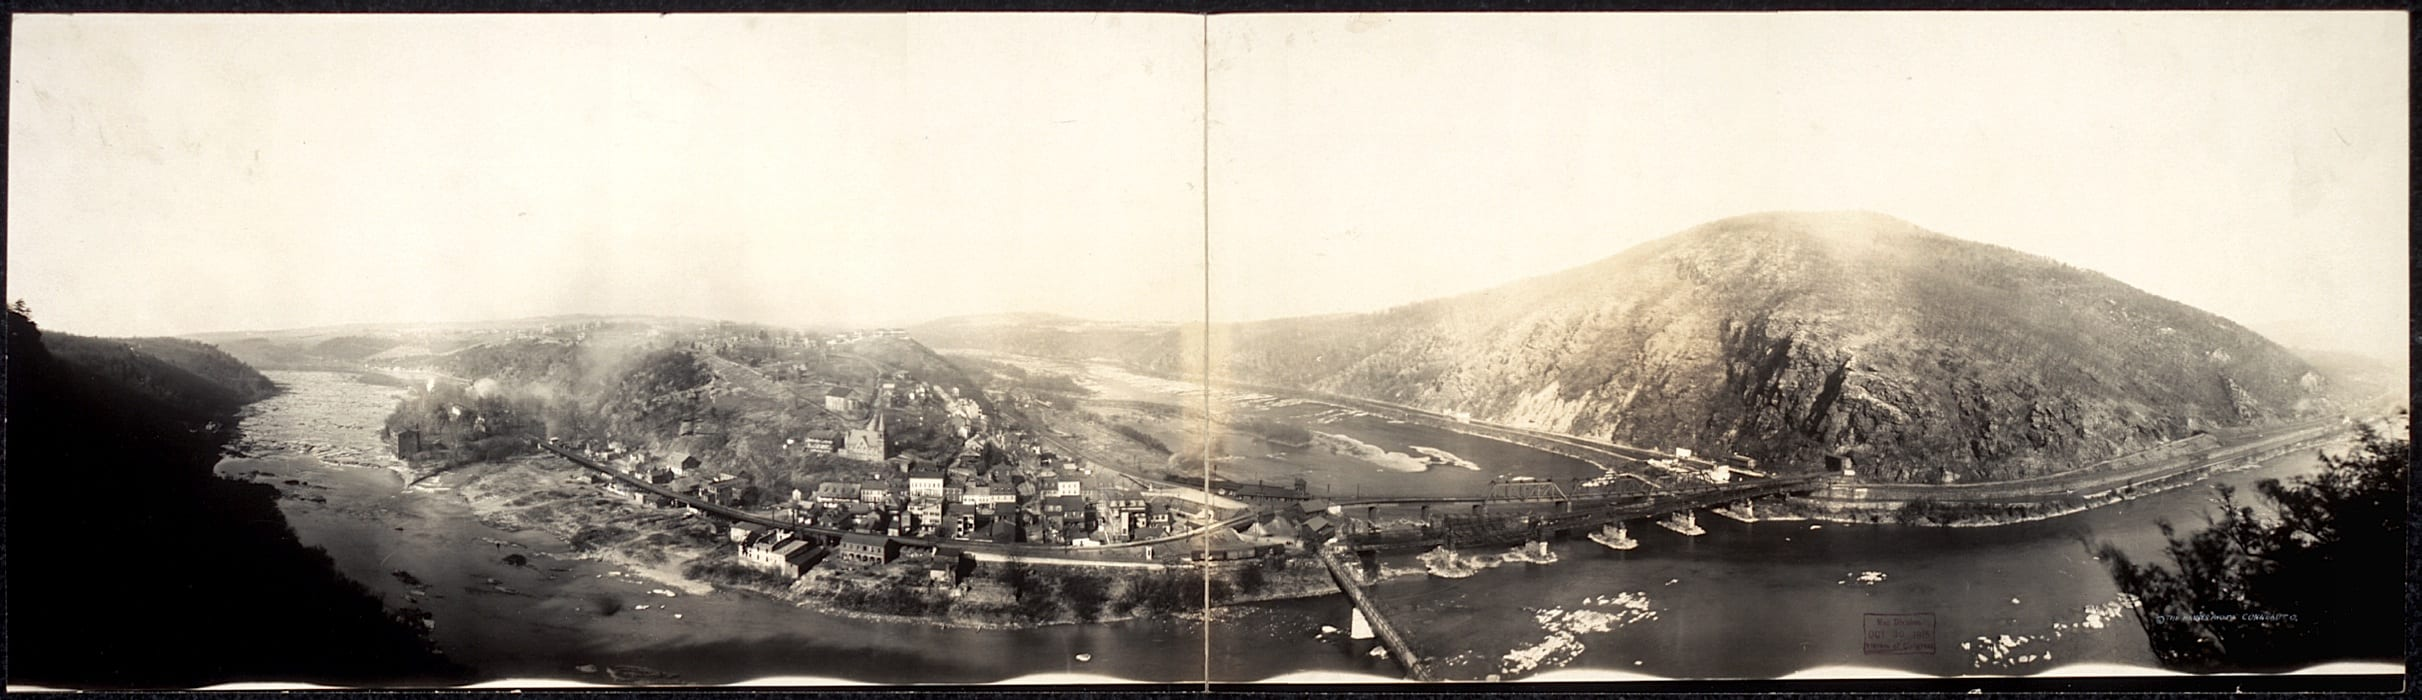 Harpers Ferry in 1915